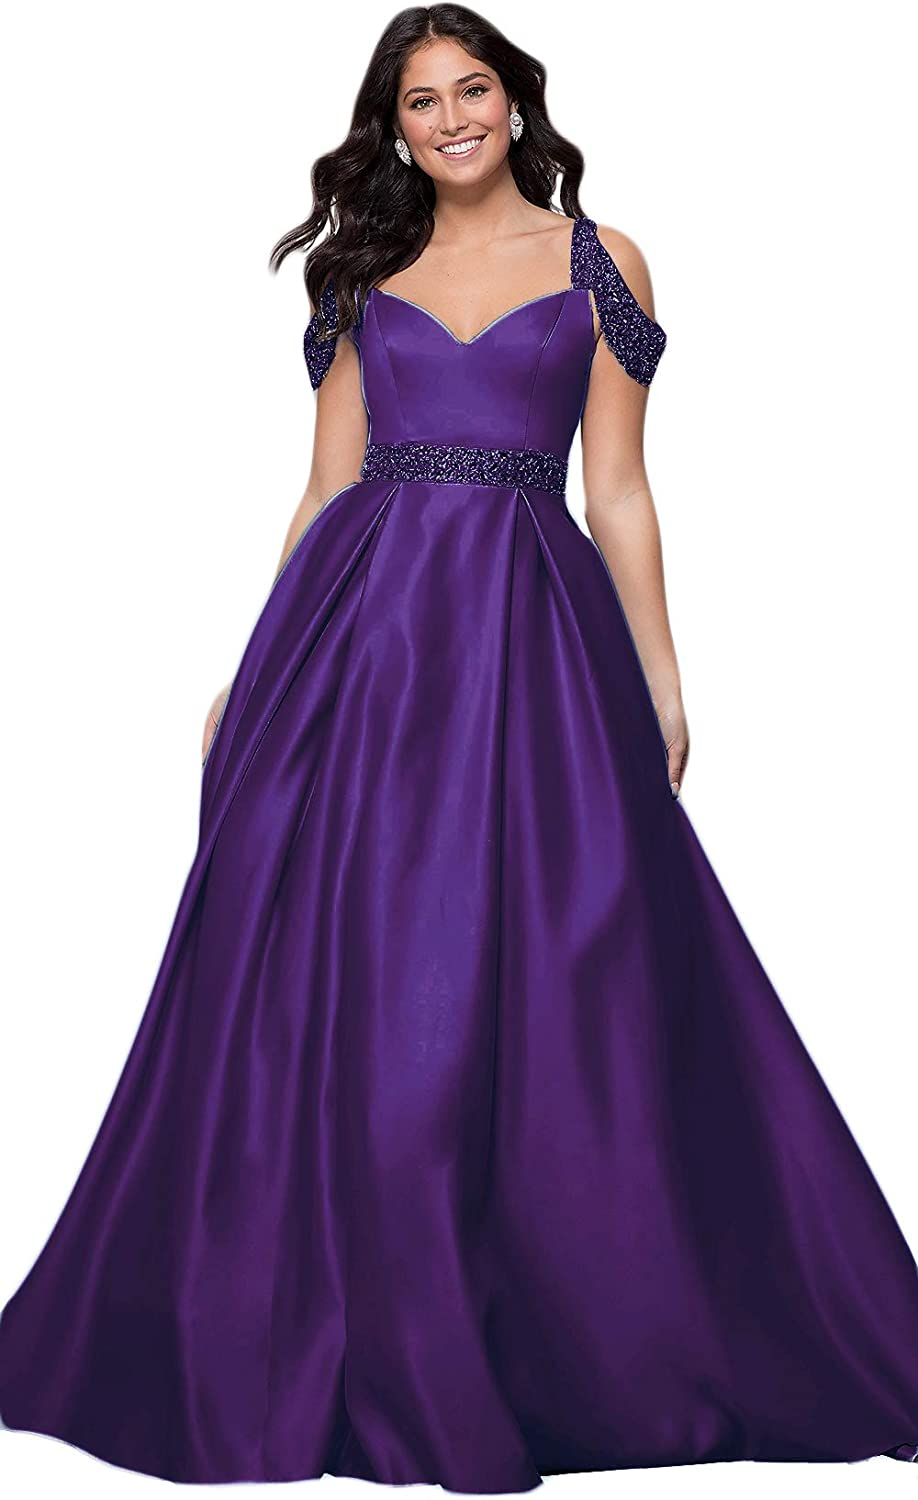 Liangjinsmkj Women's Cold Shoulder Beaded Satin Prom Dresses Long Formal Evening Party Gowns with Pockets